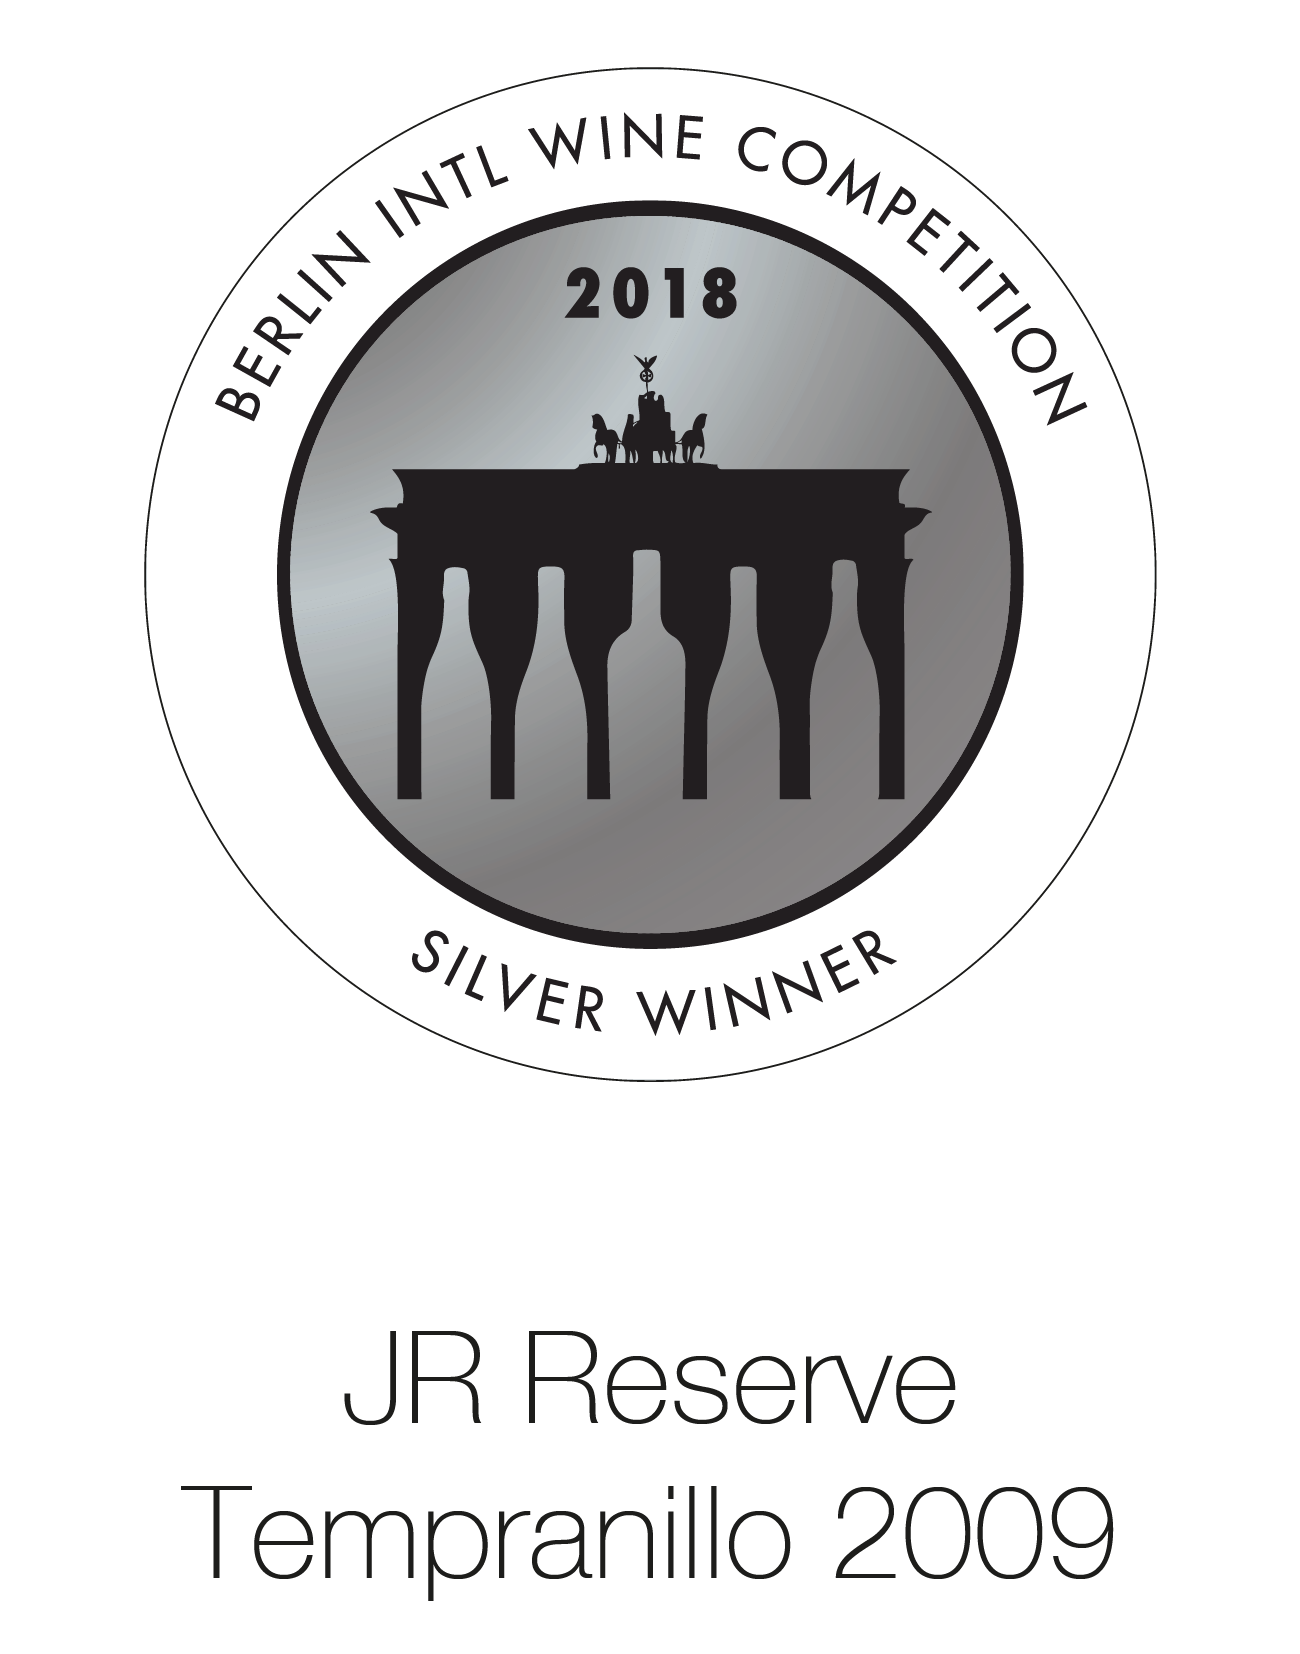 JR Reserve - Tempranillo 2009 - Berlin International Wine Competition 2018